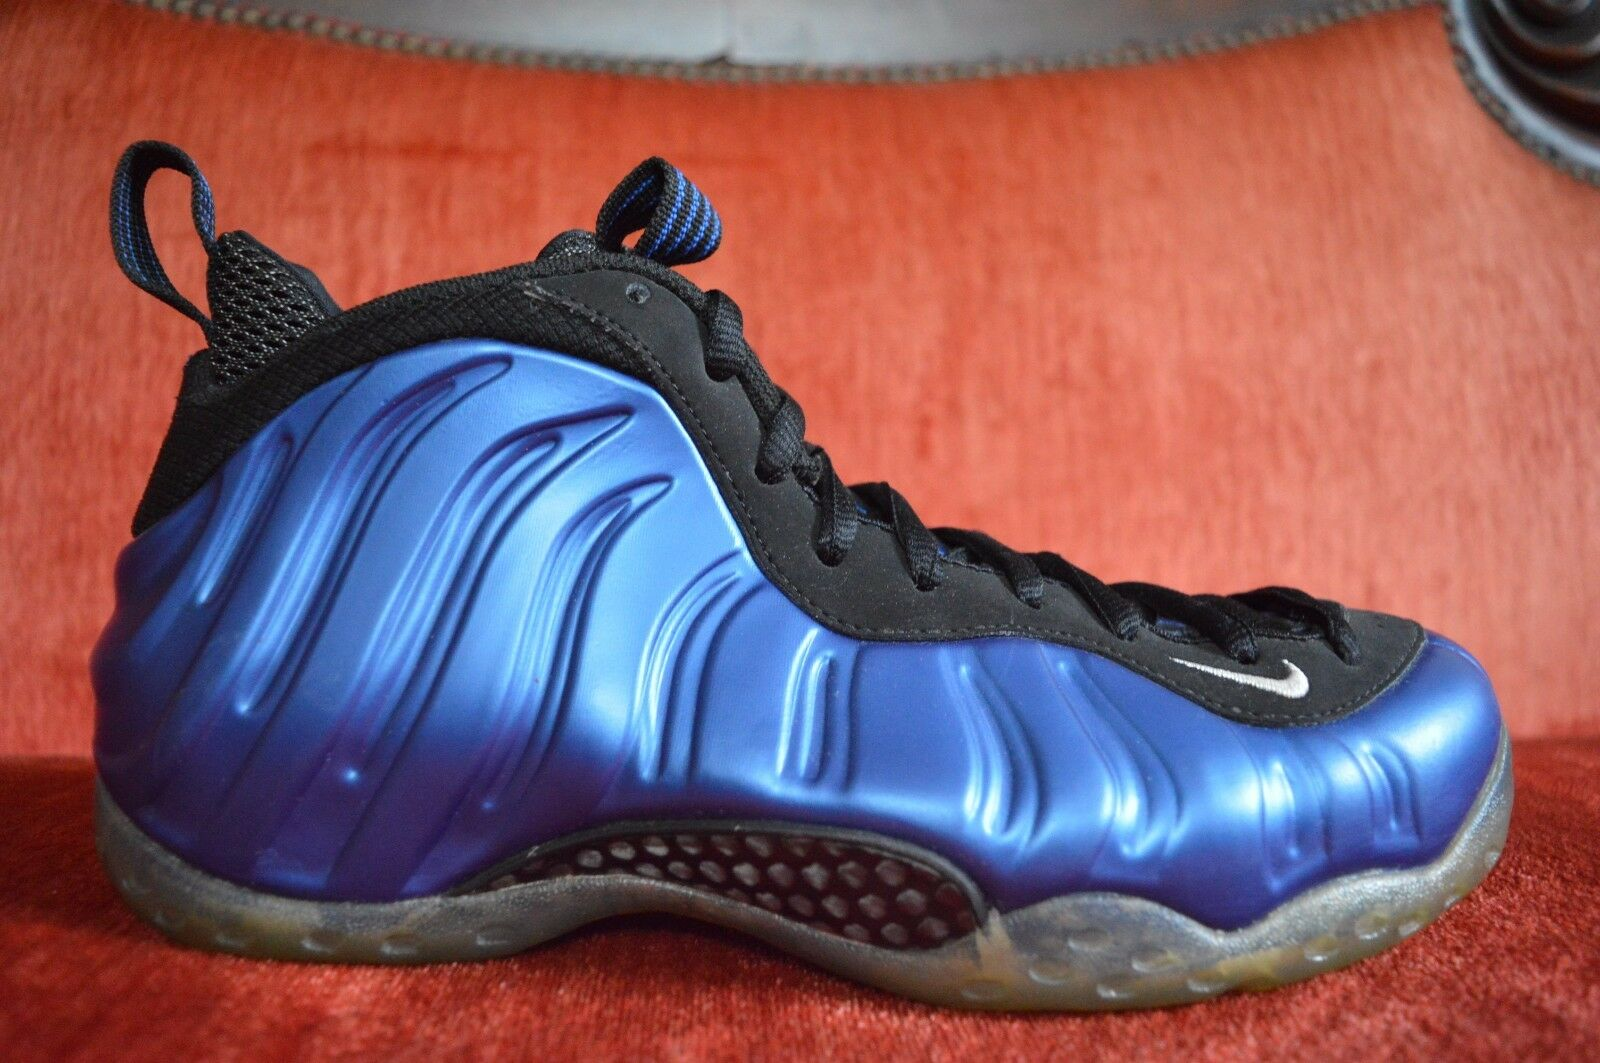 2018 Nike Air FOAMPOSITE ONE 1 PENNY NEON ROYAL BLUE BLACK 314996-500 Comfortable Seasonal price cuts, discount benefits